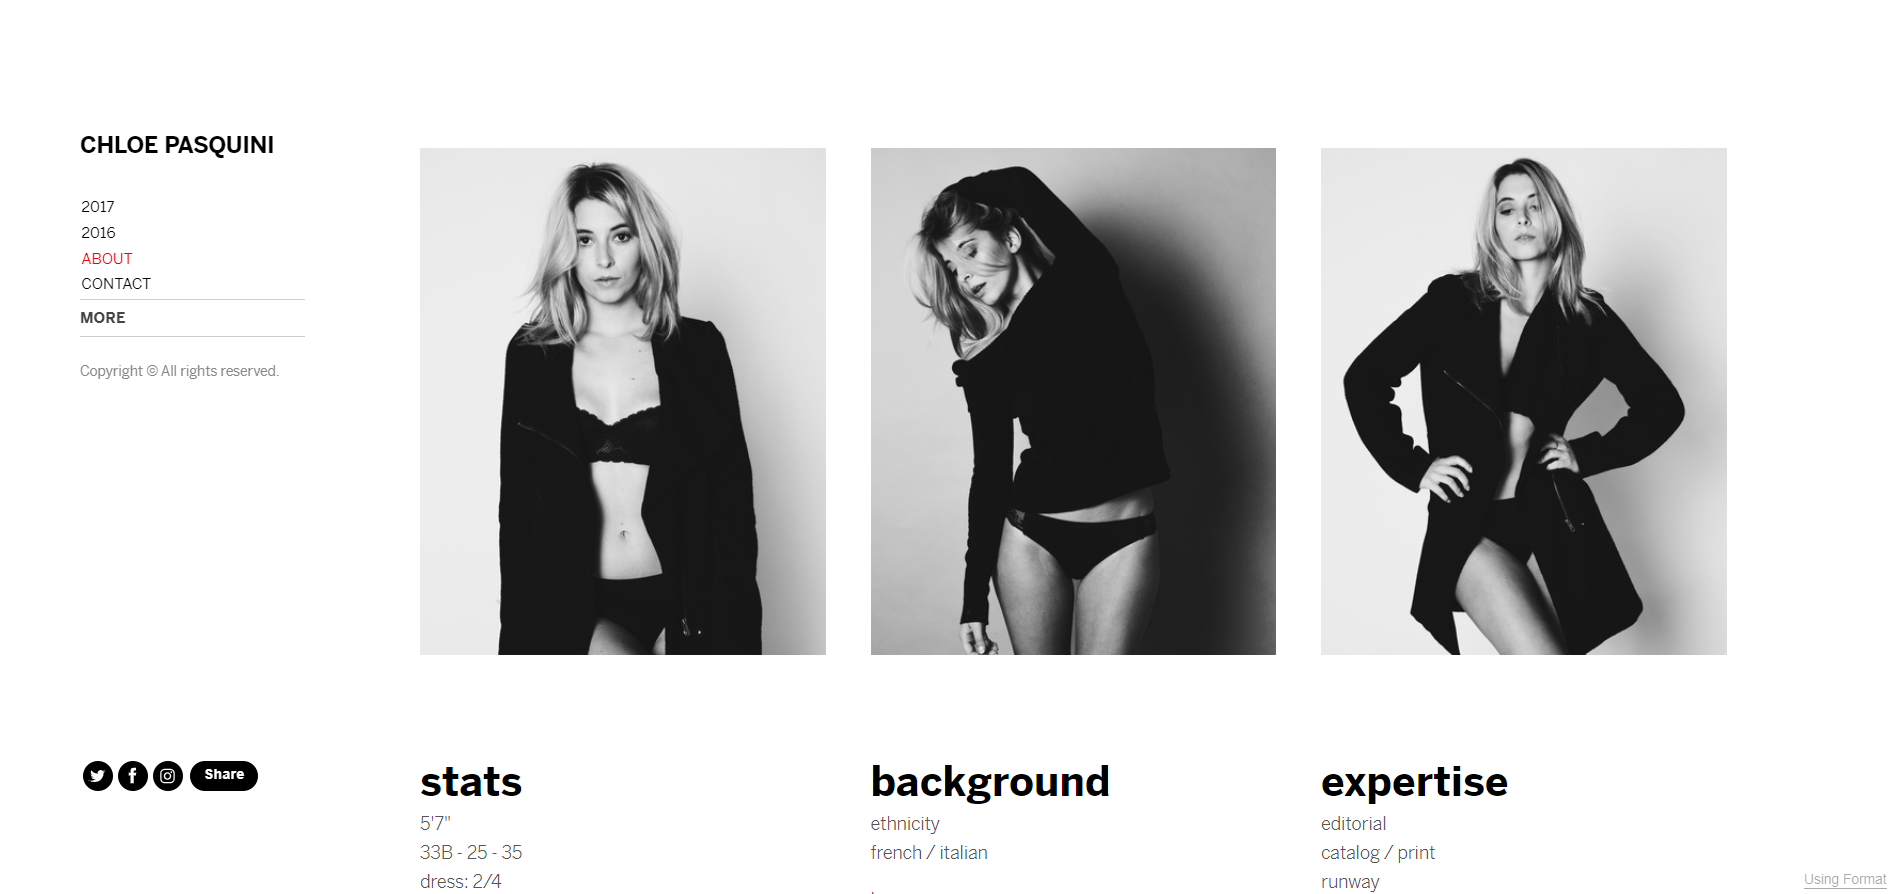 An example of a profile section of a model portfolio website